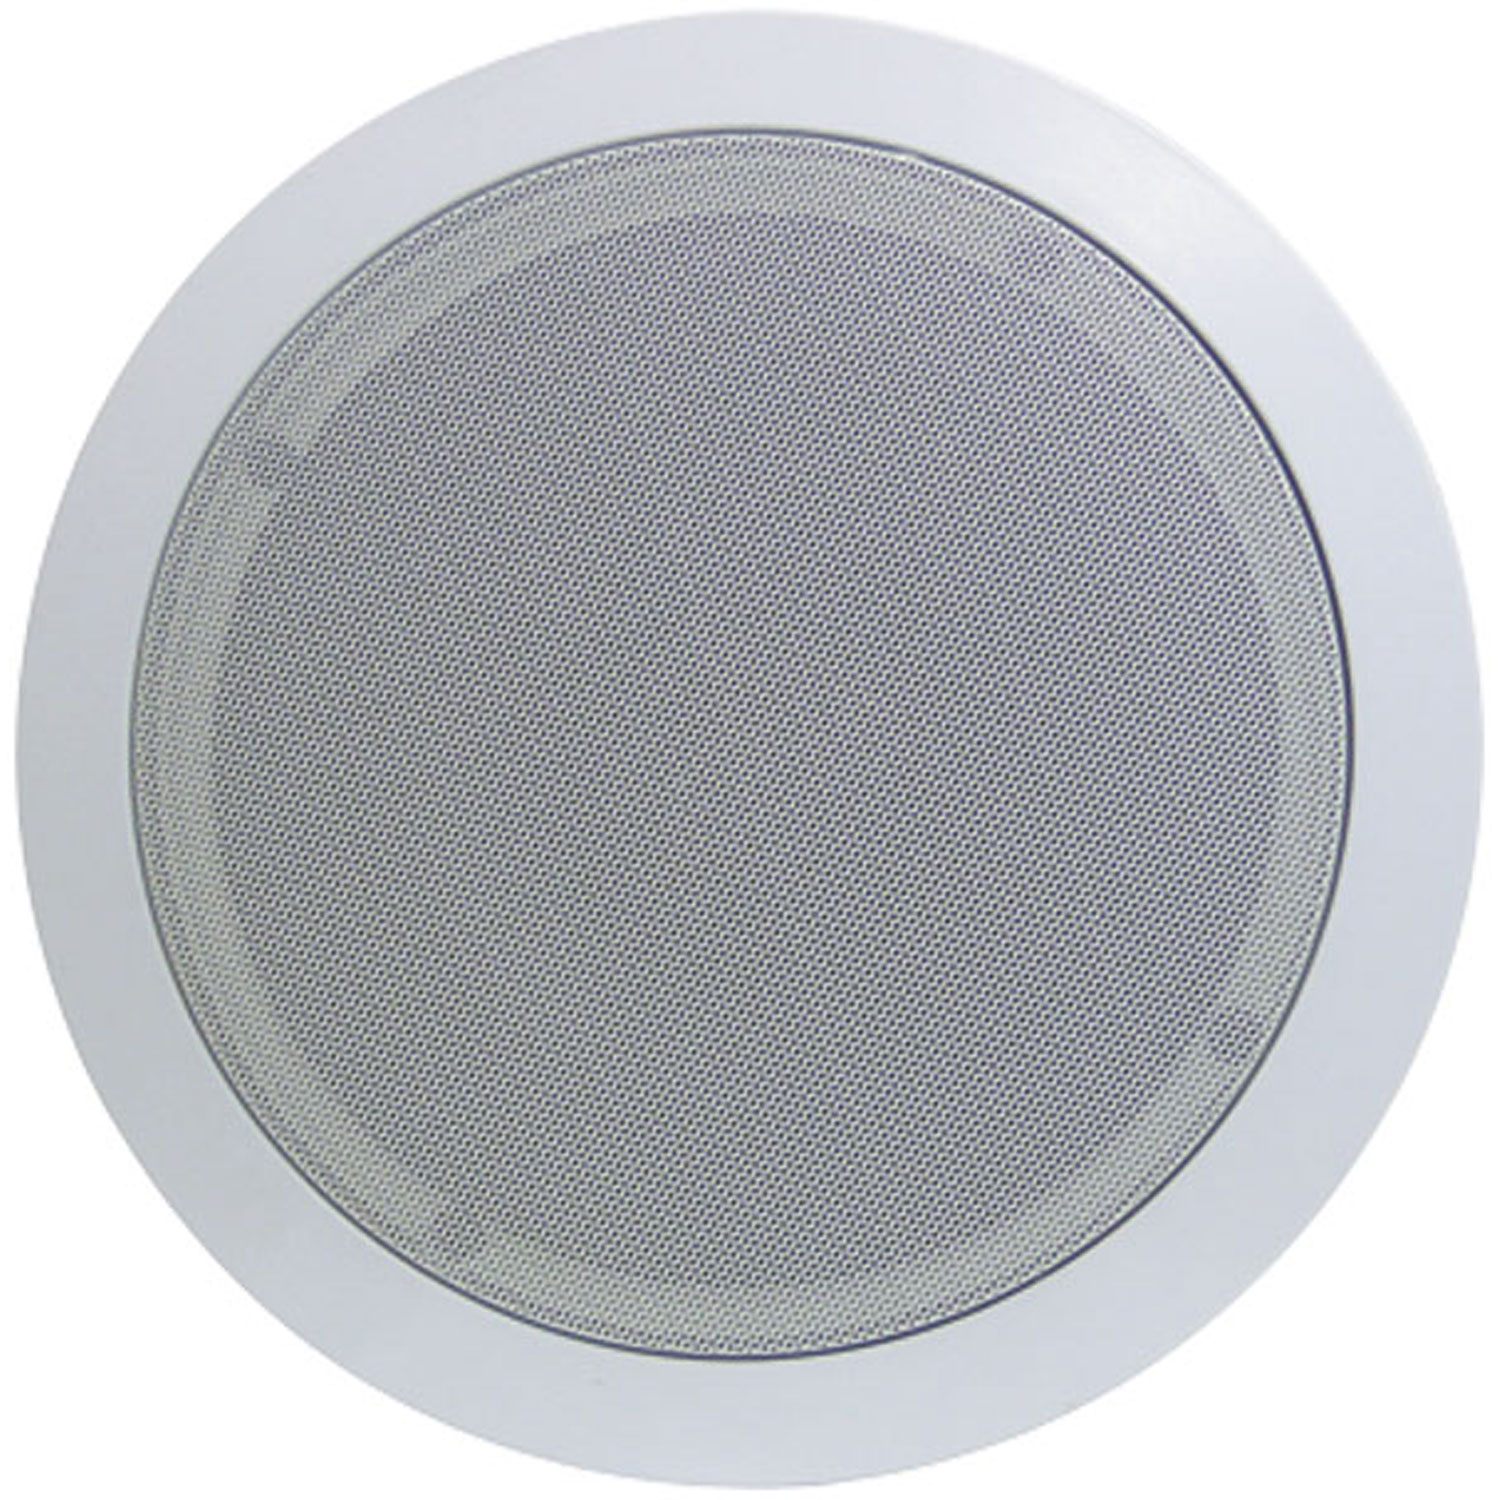 "Pyle 5.25"" Two-Way In-Ceiling Speaker System (Pair)"